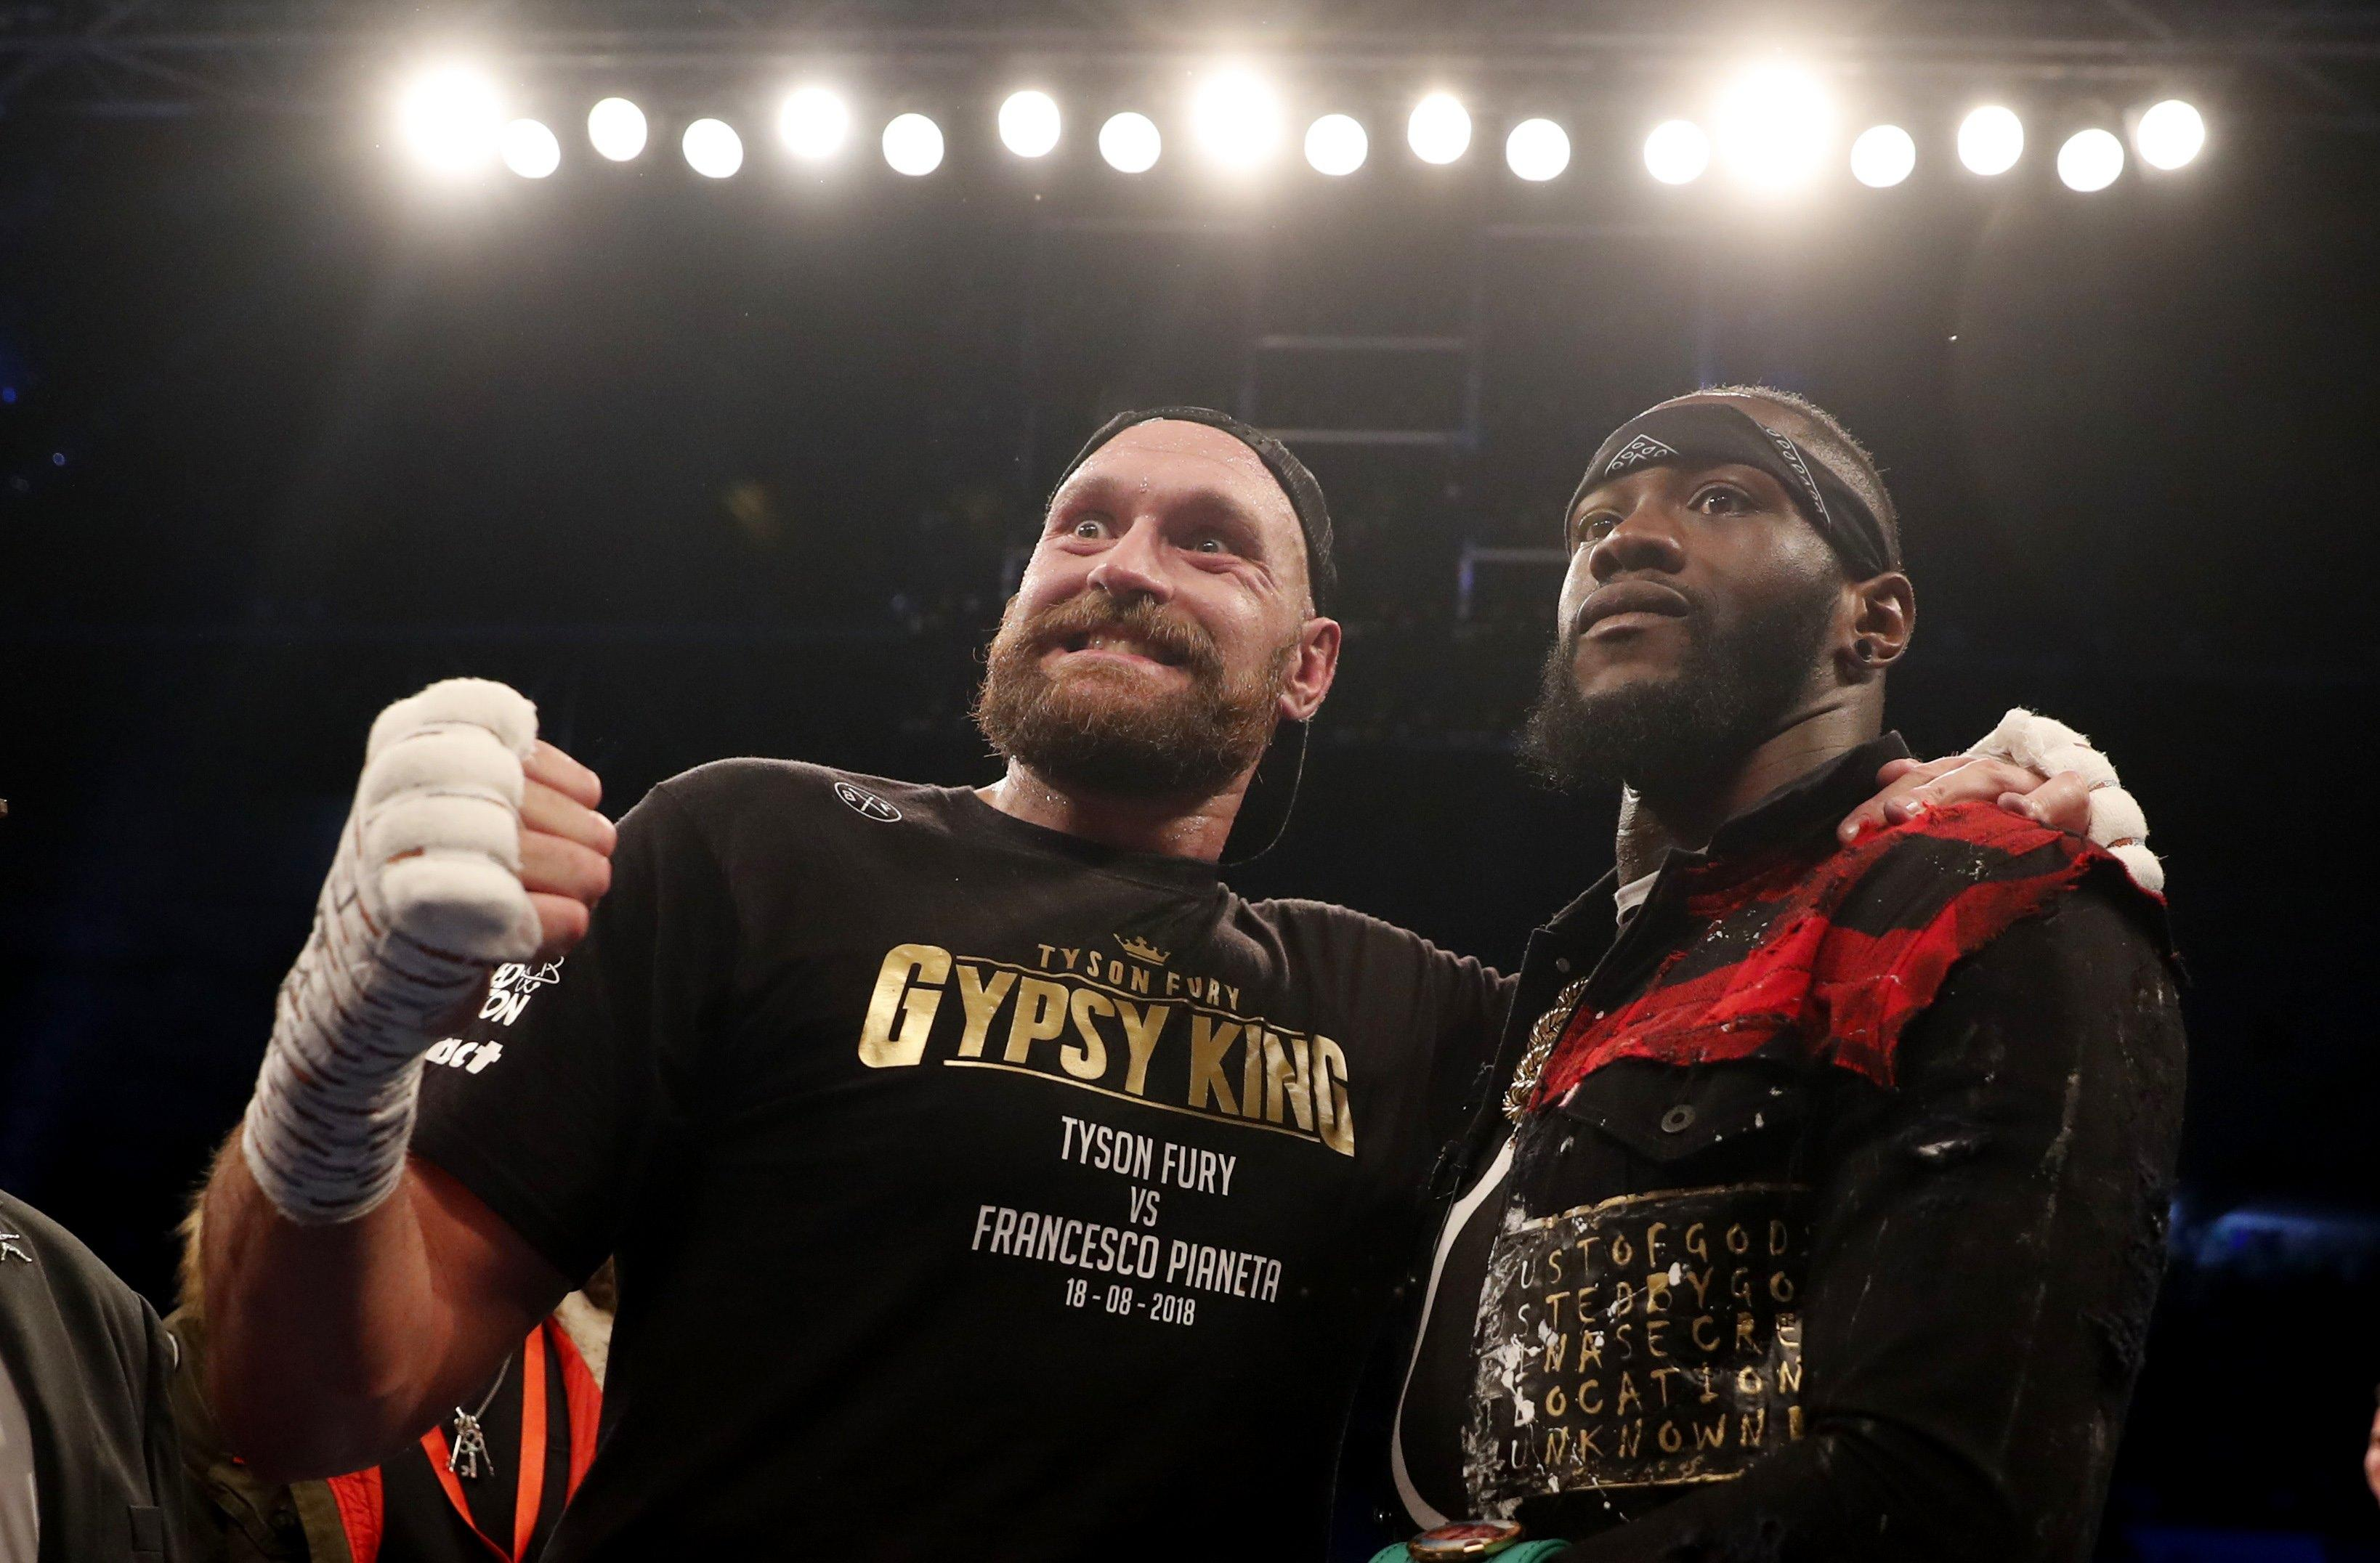 Tyson Fury and Deontay Wilder will fight in Las Vegas later this year